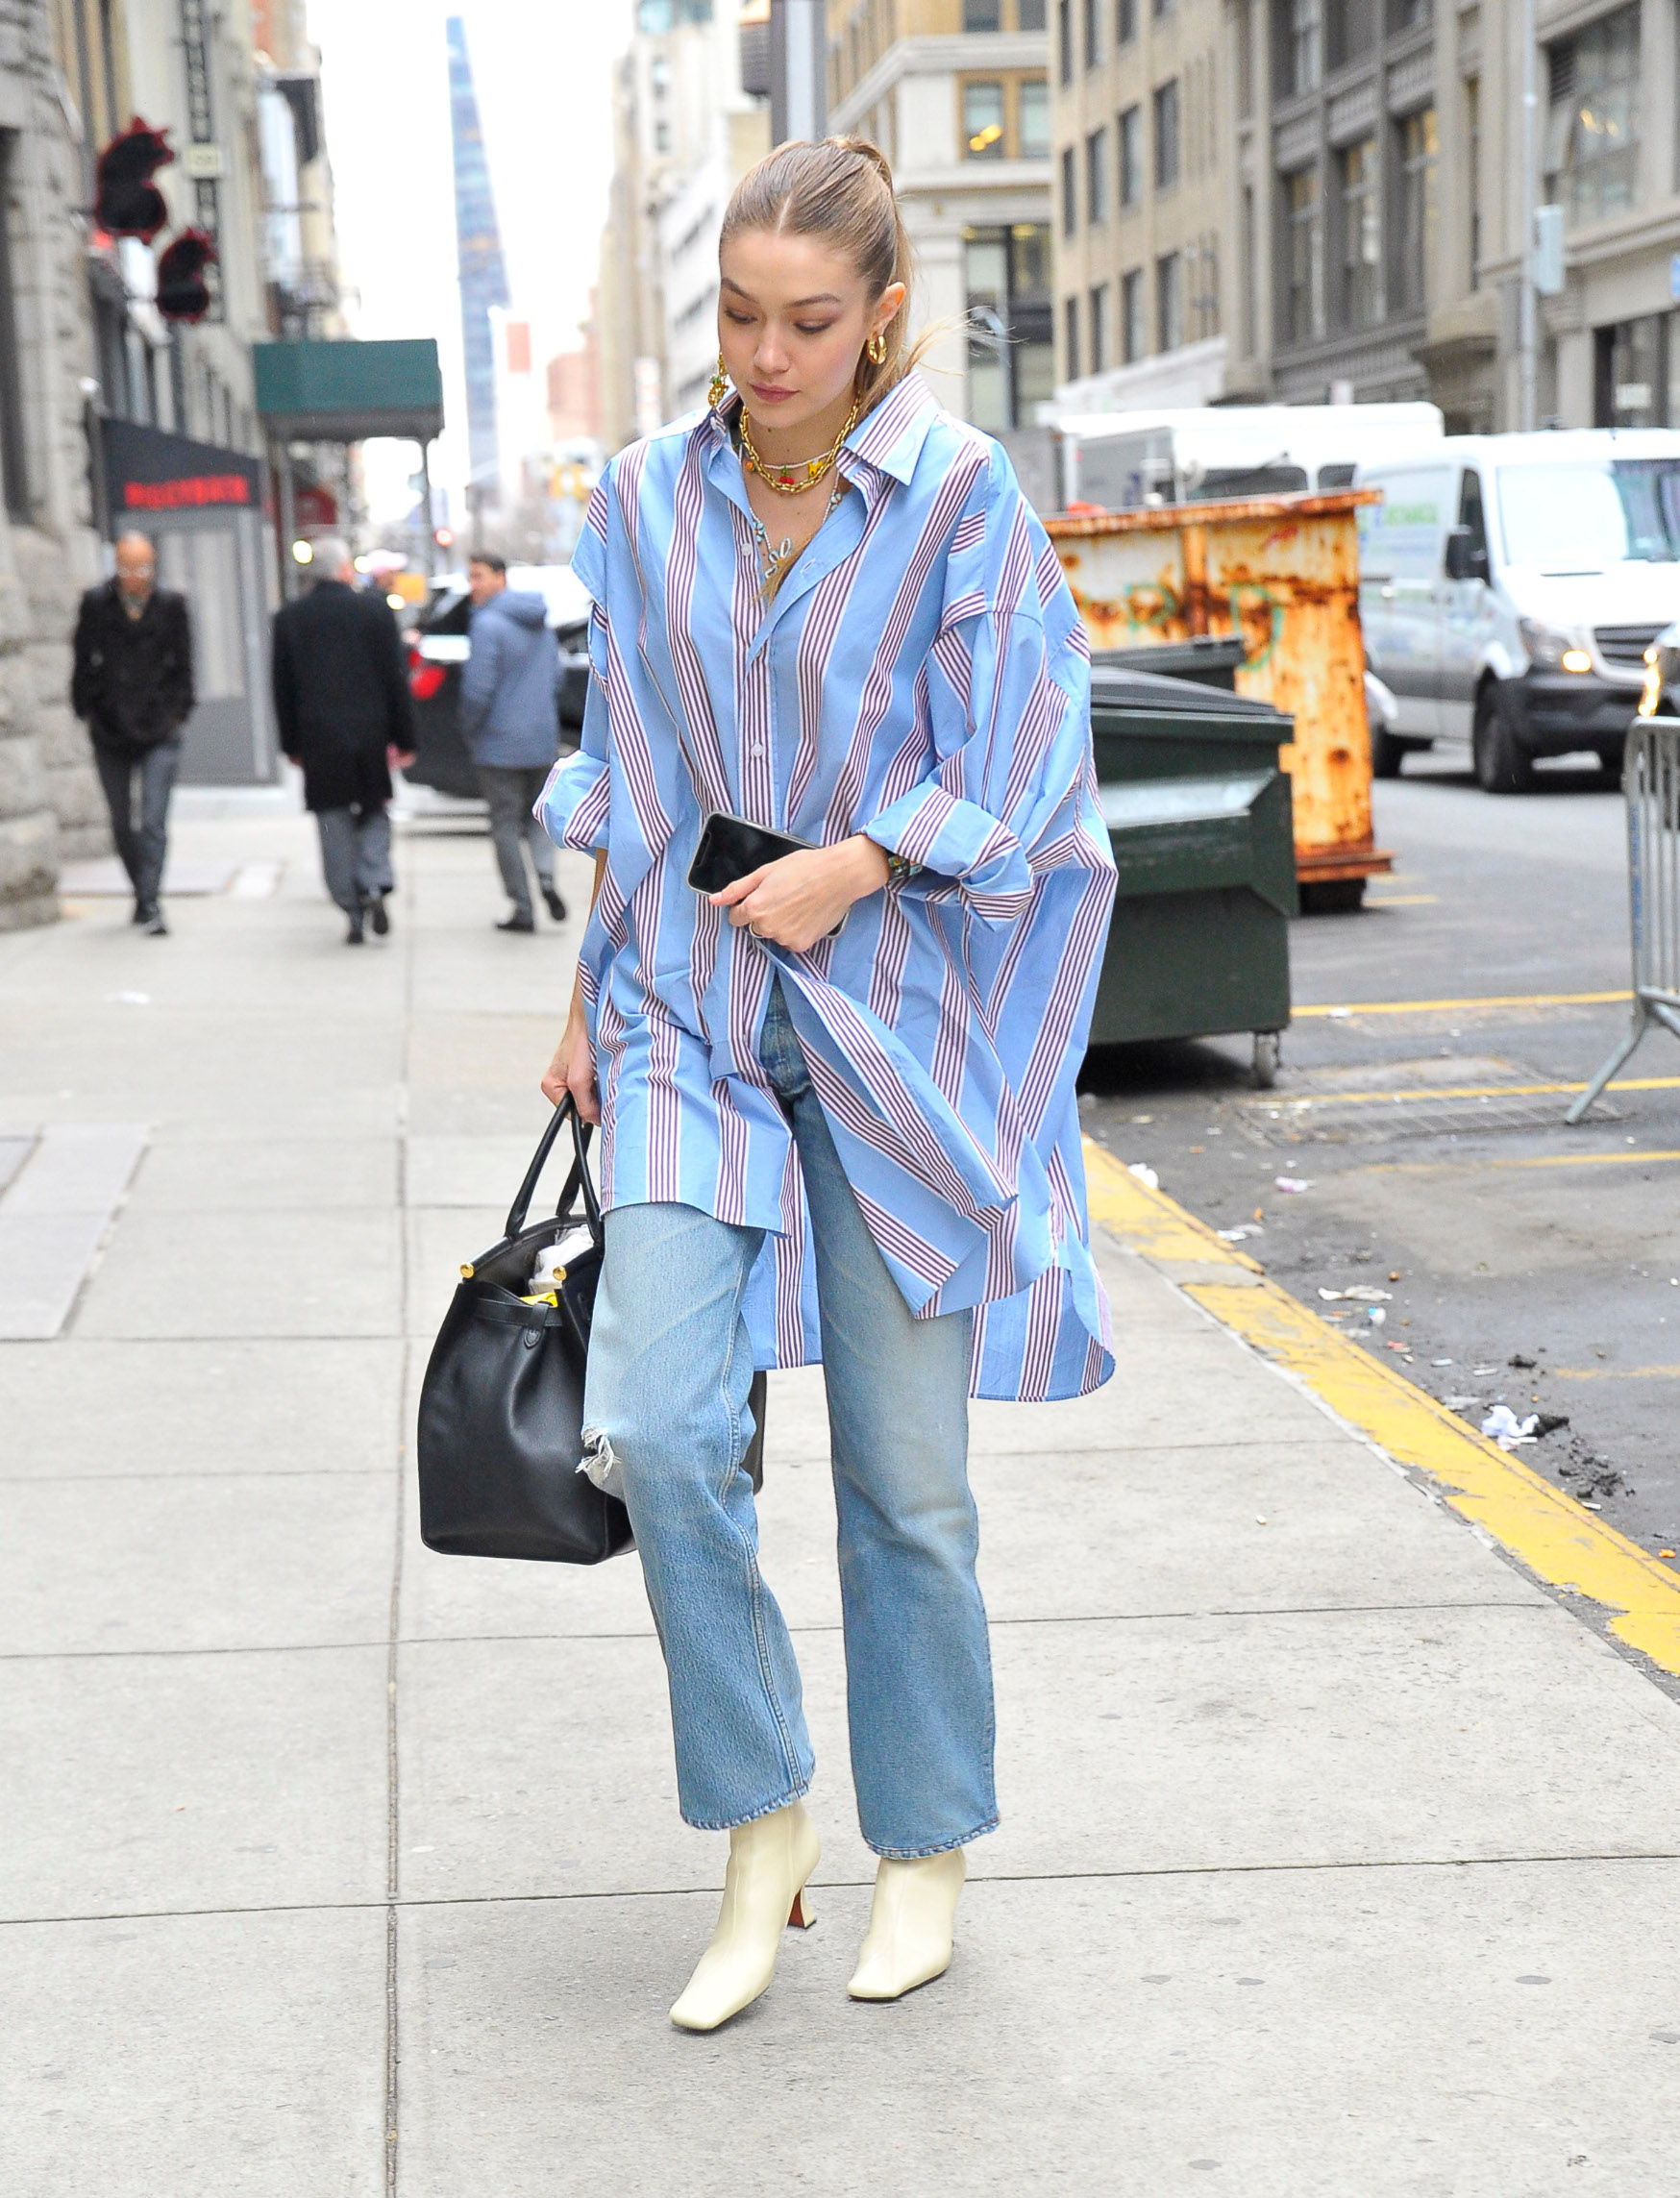 02/05/2020 EXCLUSIVE: Gigi Hadid is pictured stepping out in New York City. The 24 year old supermodel wore an oversized striped dress shirt, light blue jeans, and white heels., Image: 496629799, License: Rights-managed, Restrictions: Exclusive NO usage without agreed price and terms. Please contact sales@theimagedirect.com, Model Release: no, Credit line: TheImageDirect.com / The Image Direct / Profimedia